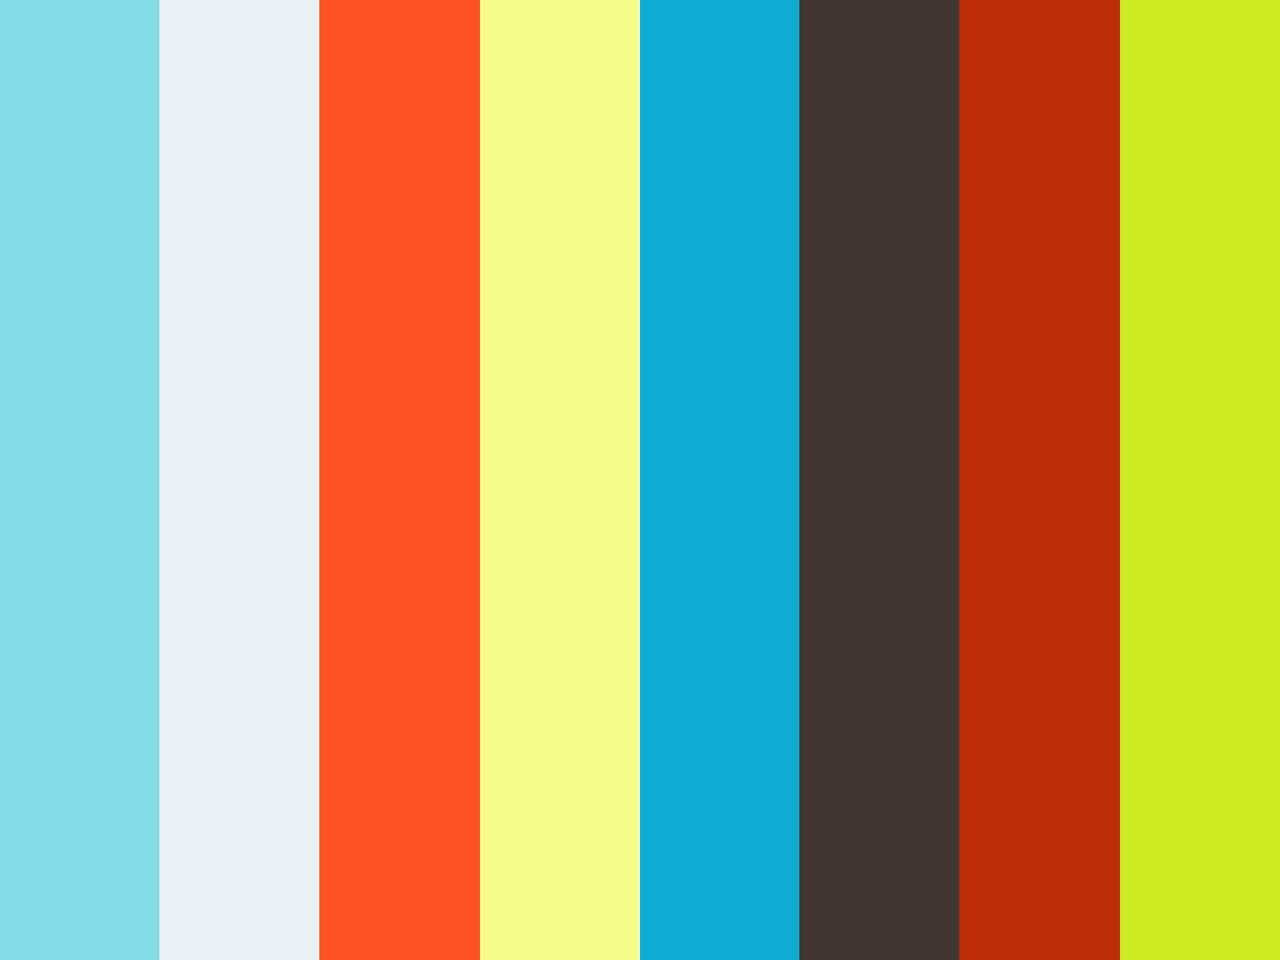 lovee on the drums